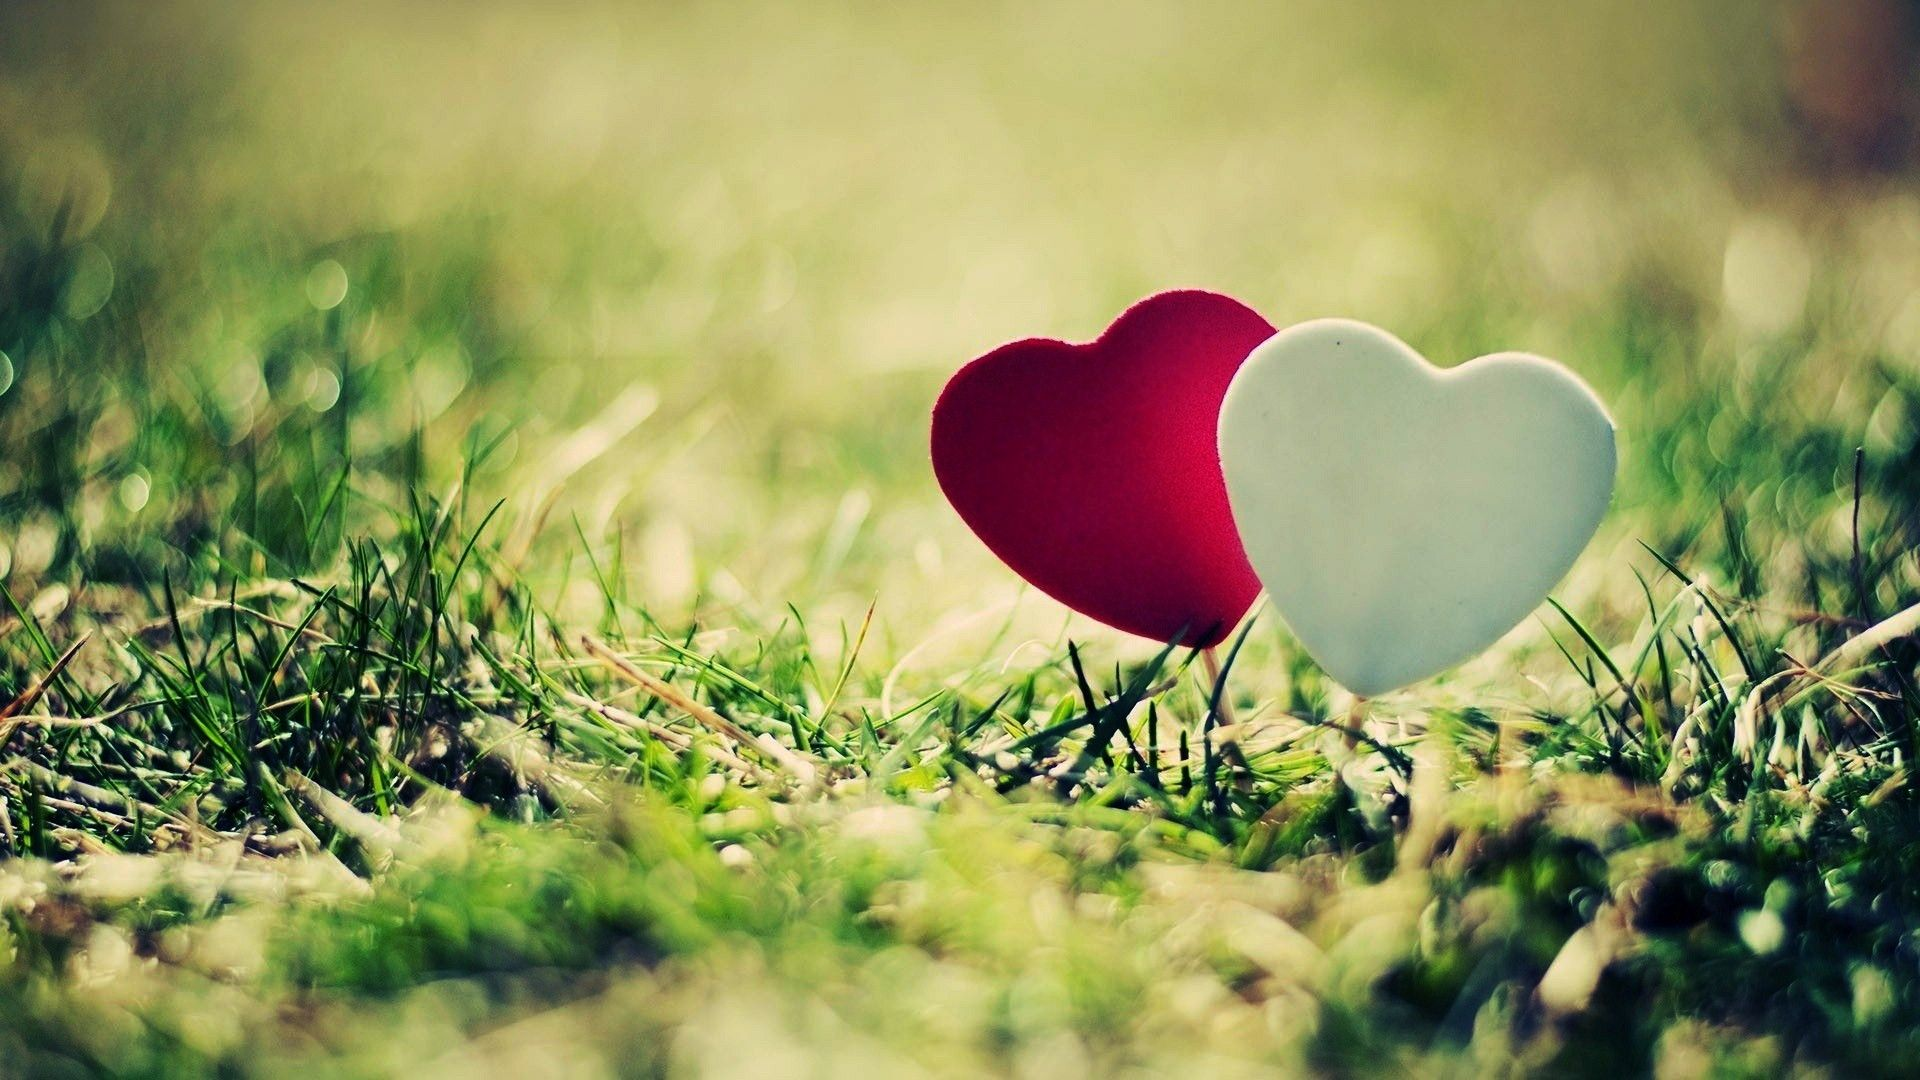 Love Wallpapers New Latest : Love and Heart Wallpapers Free Download HD Latest ...